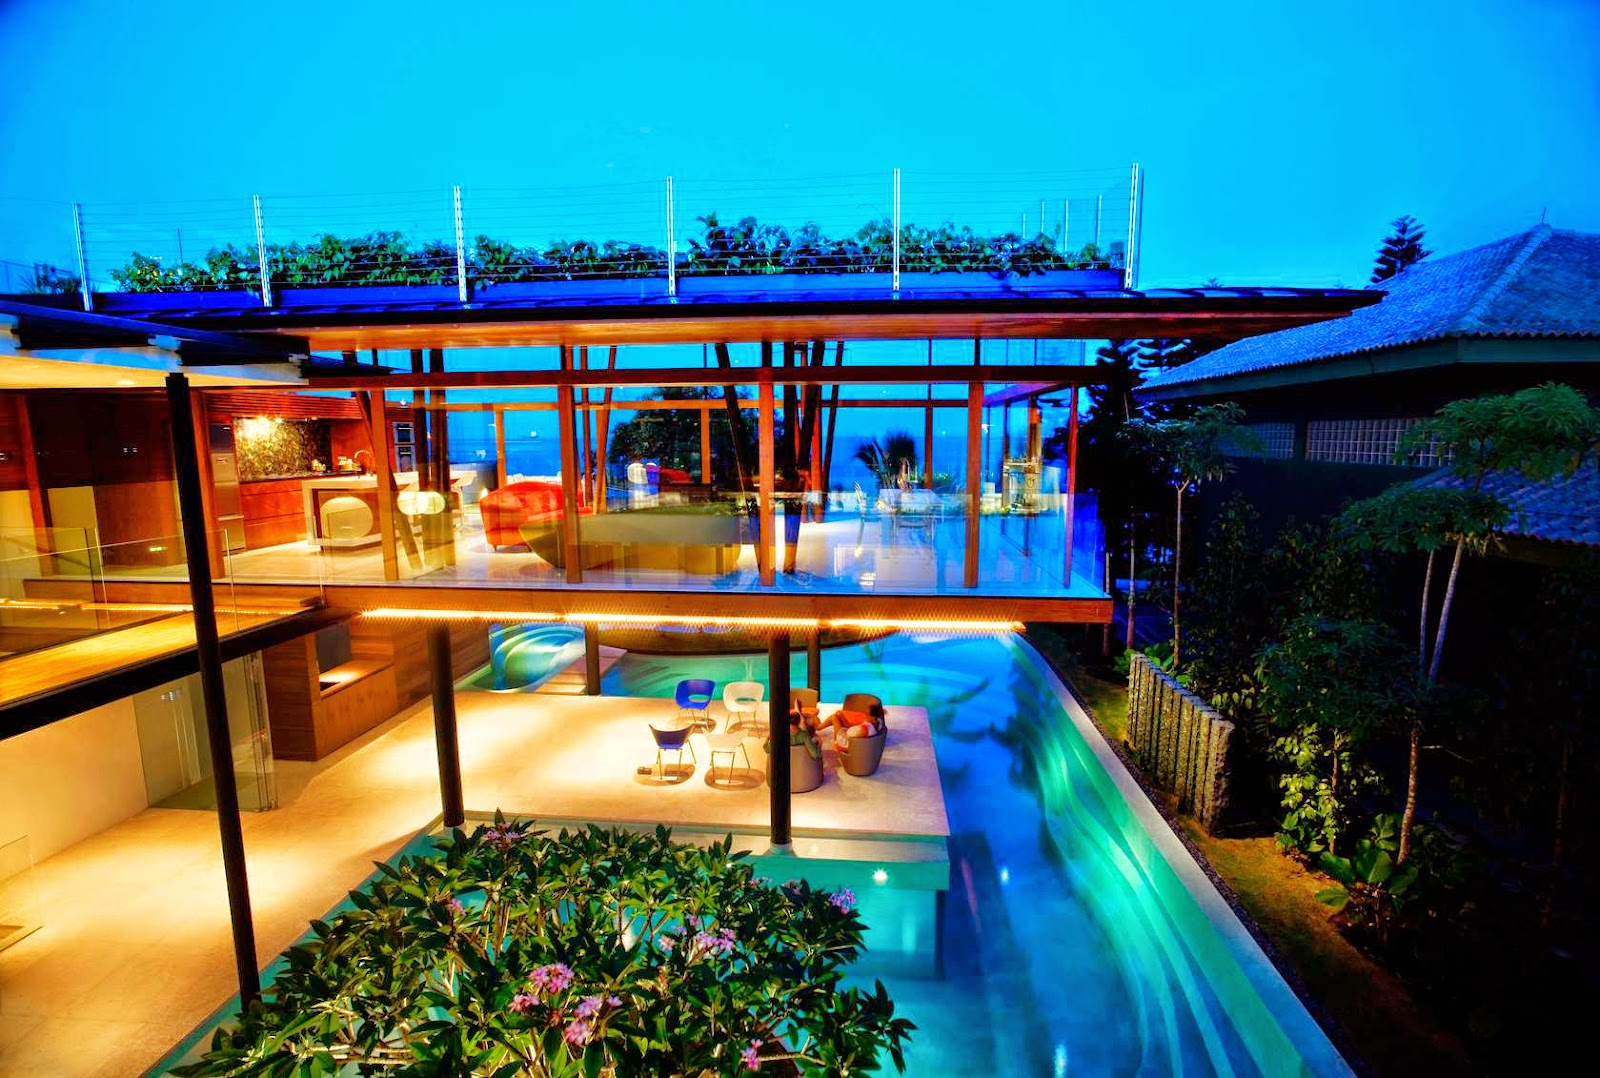 50 stunning houses in singapore urban architecture now - La residence exotique fish house singapour ...